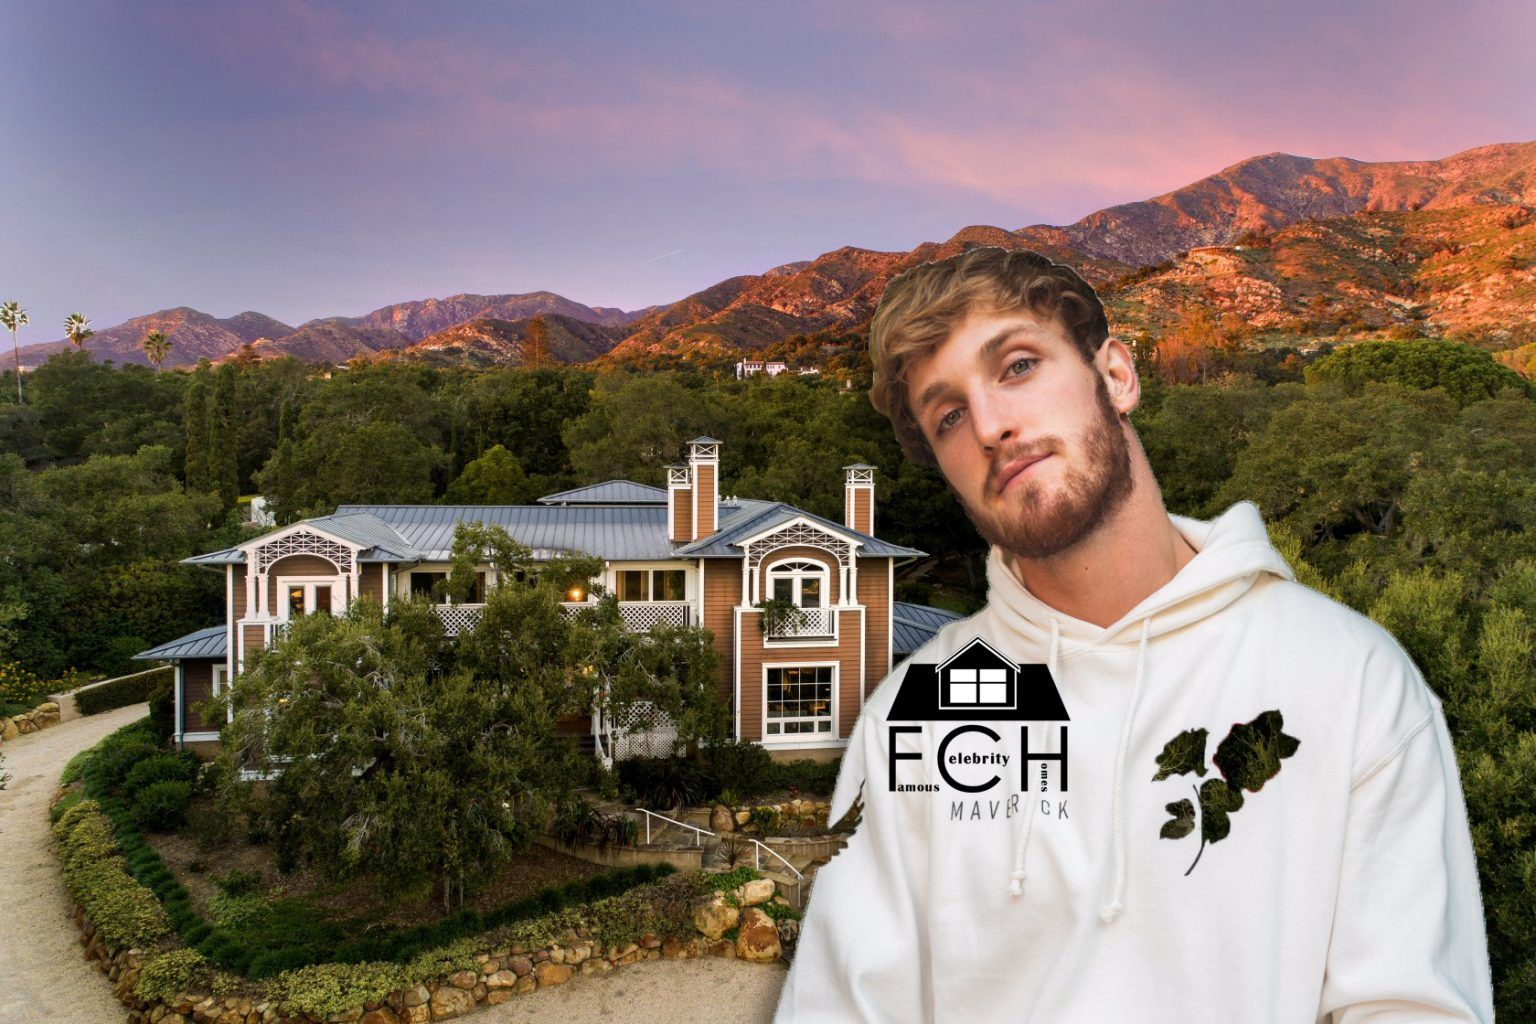 Logan Paul Buys Ranch For 1 Million In The Middle Of Nowhere Celebrity Houses Logan Paul Ranch This was mirrored from liveleak. logan paul buys ranch for 1 million in